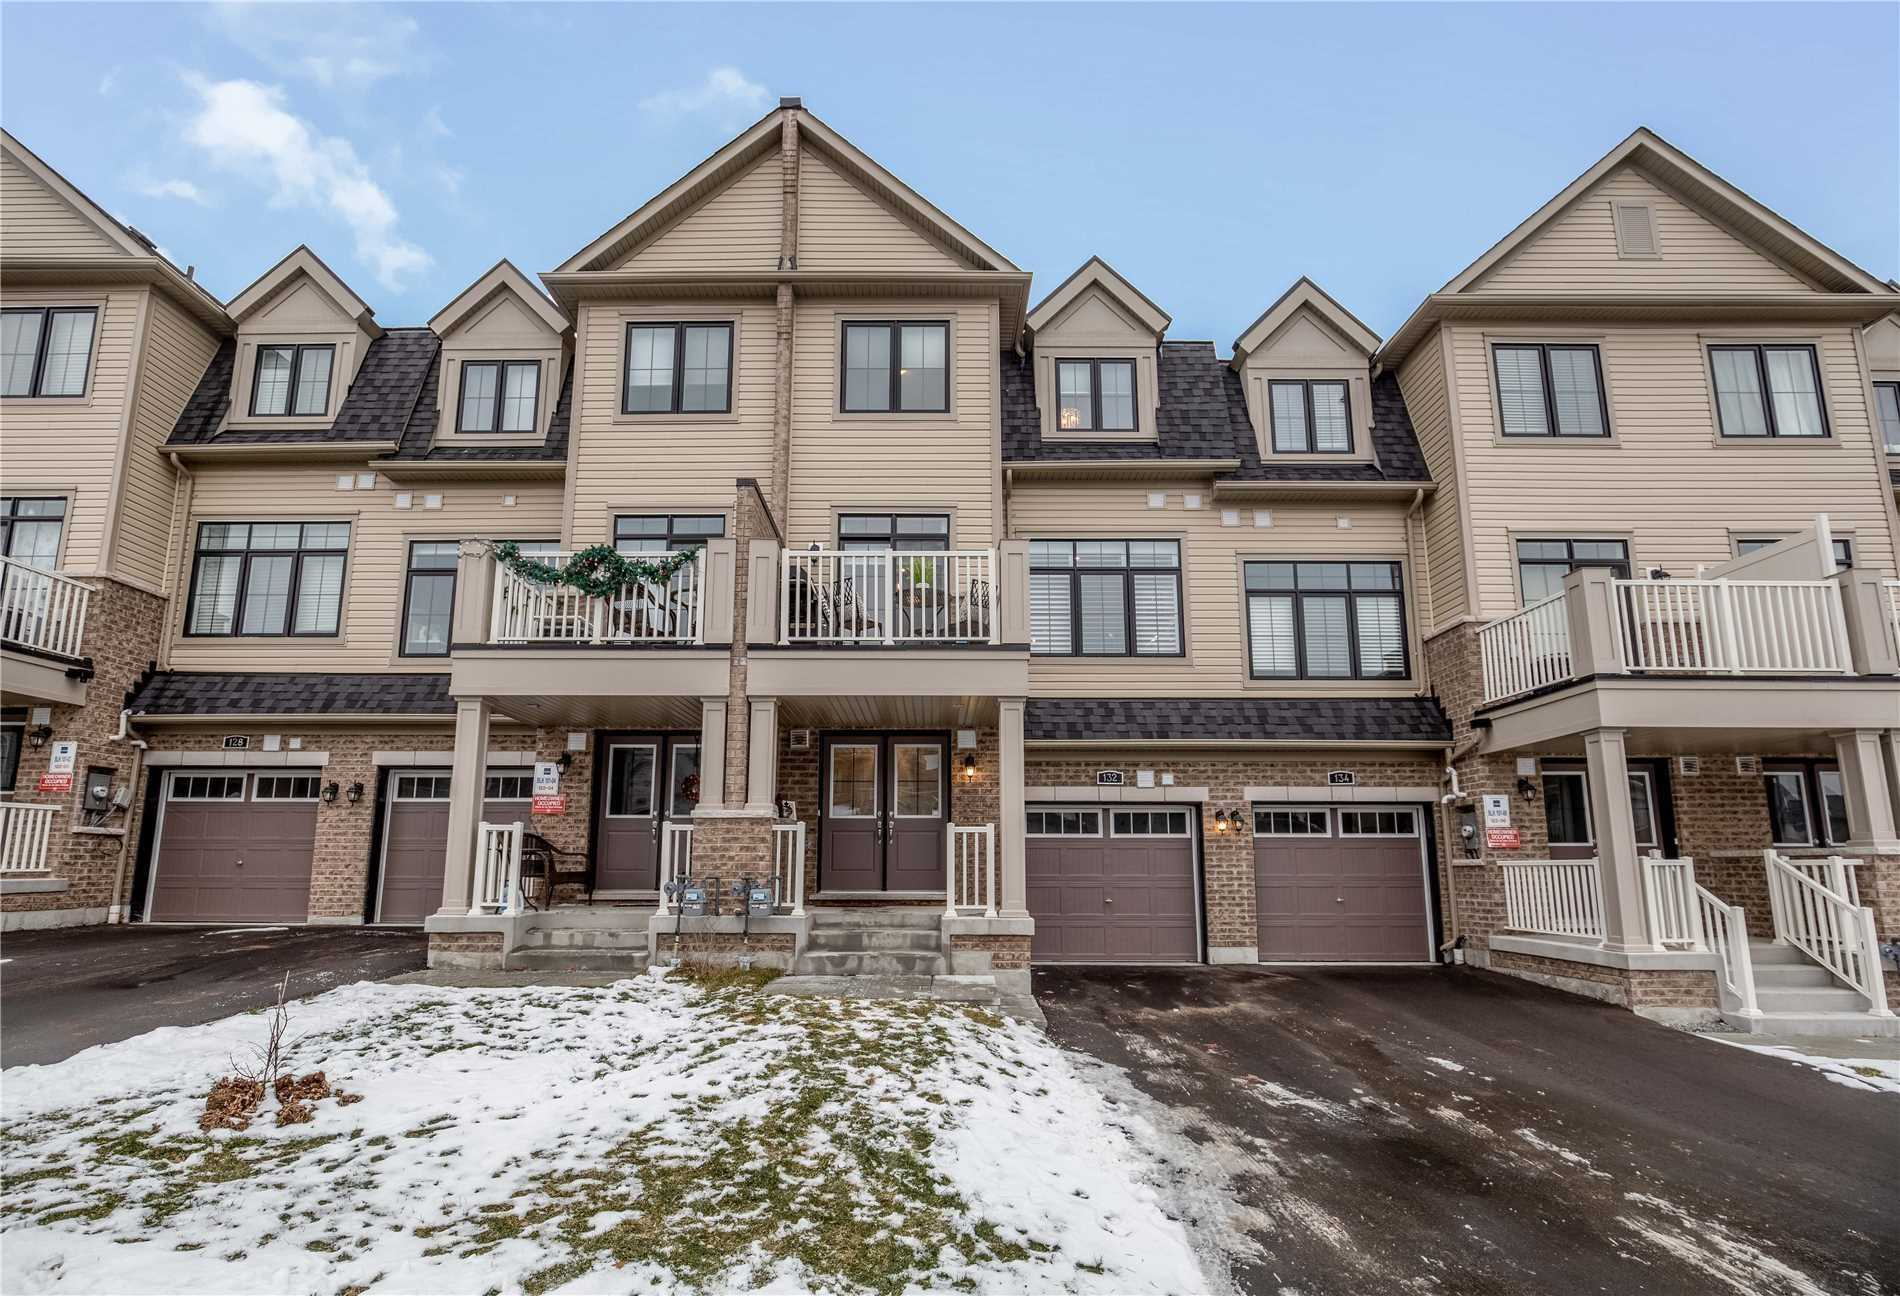 pictures of 132 Alvin Pegg Dr, East Gwillimbury L9N0R7